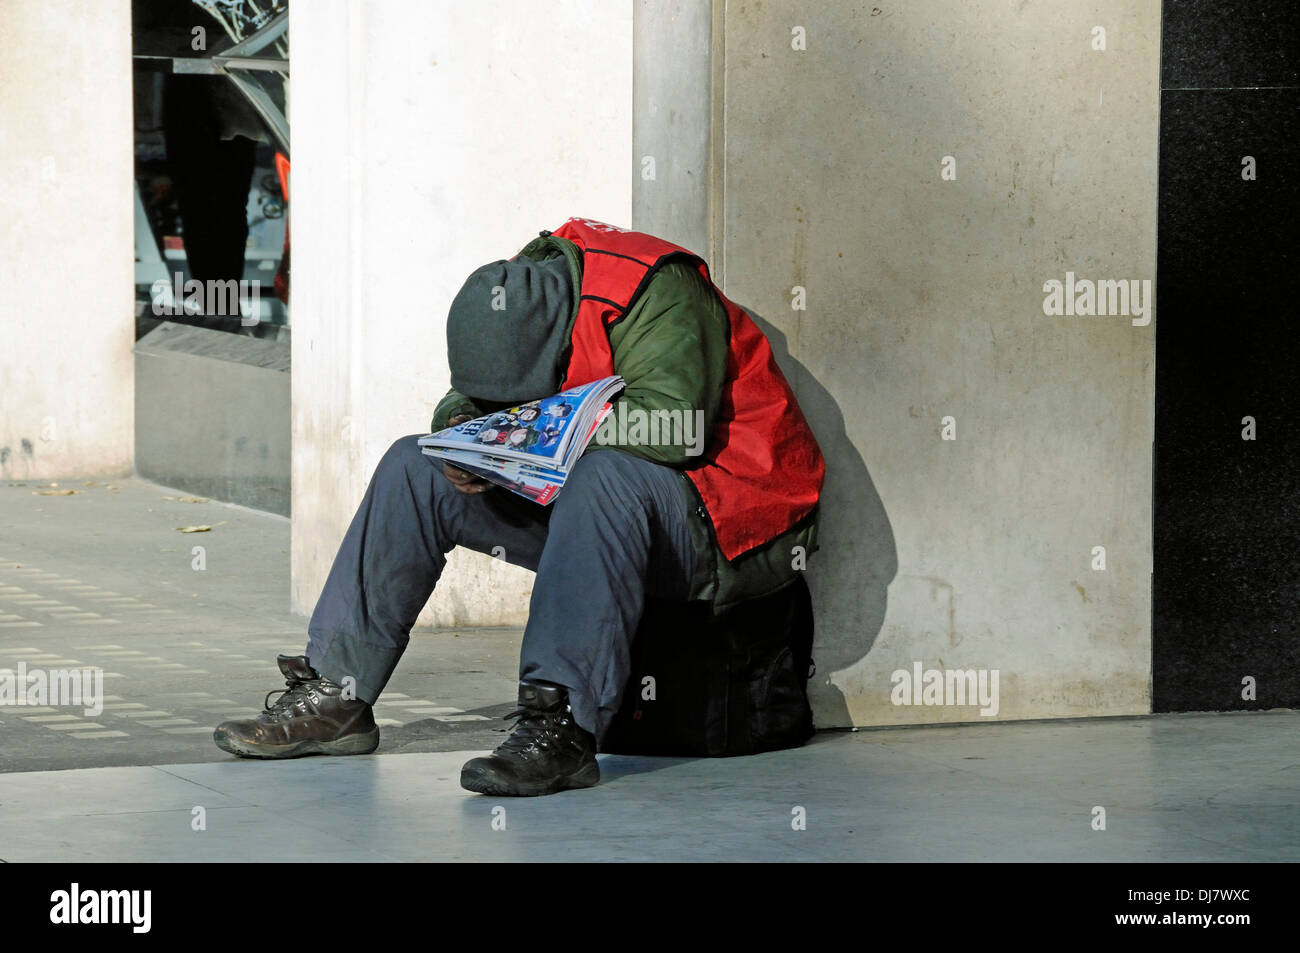 Big issue seller wrapped up warmly against the cold and asleep in the Winter sunshine, Central London, England UK - Stock Image